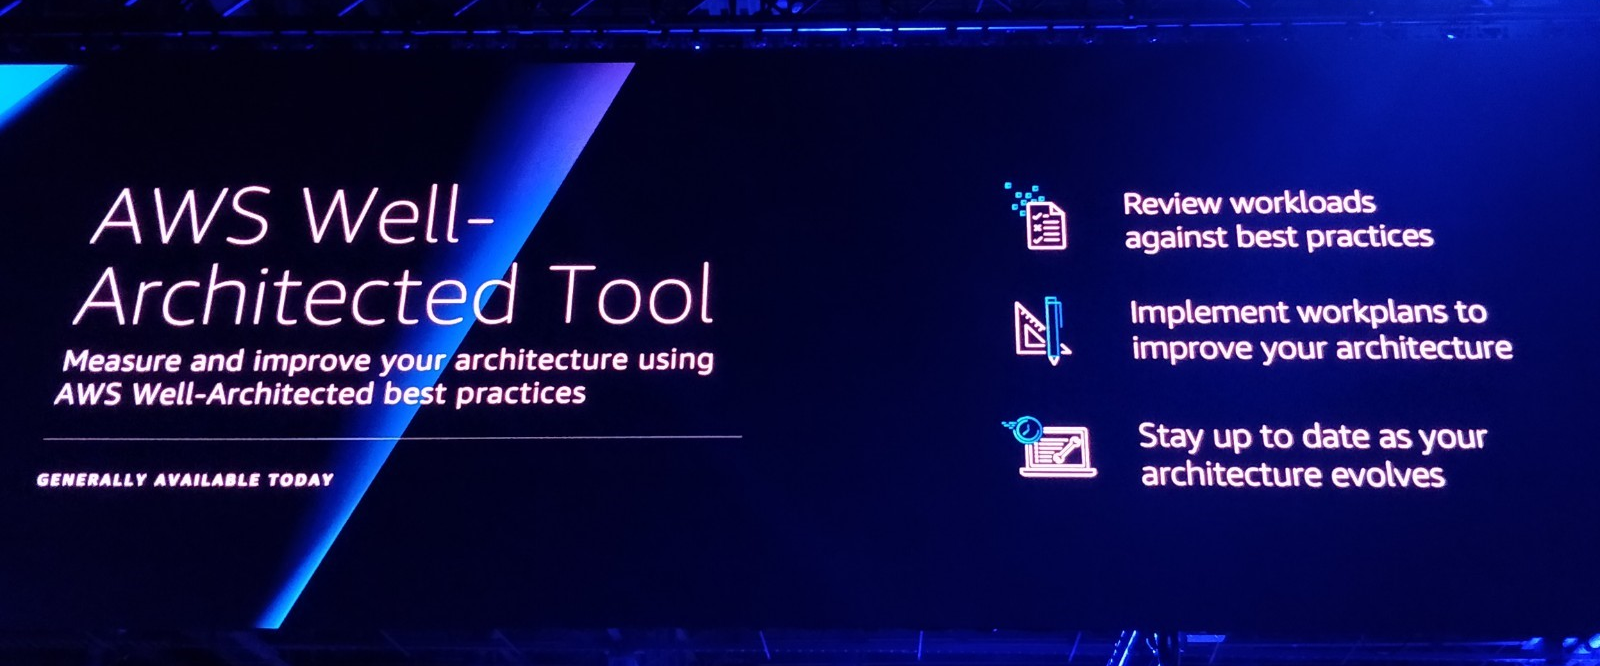 aws-well-architected-tool